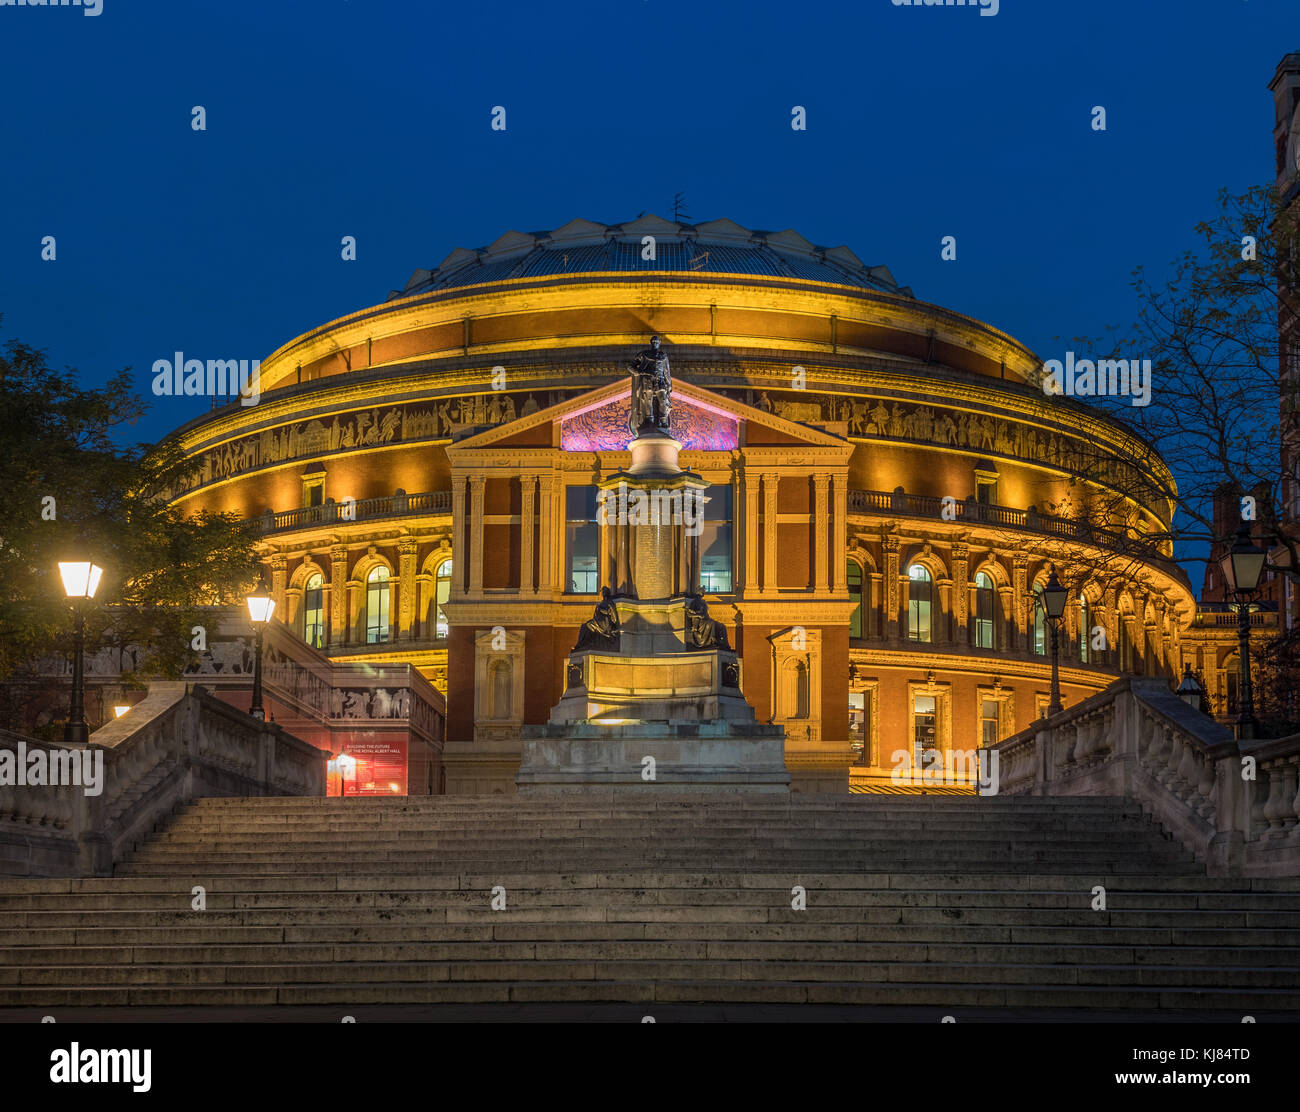 Queen Elizabeth II Diamond Jubilee Pasos, Royal Albert Hall, Londres, Reino Unido al atardecer Imagen De Stock